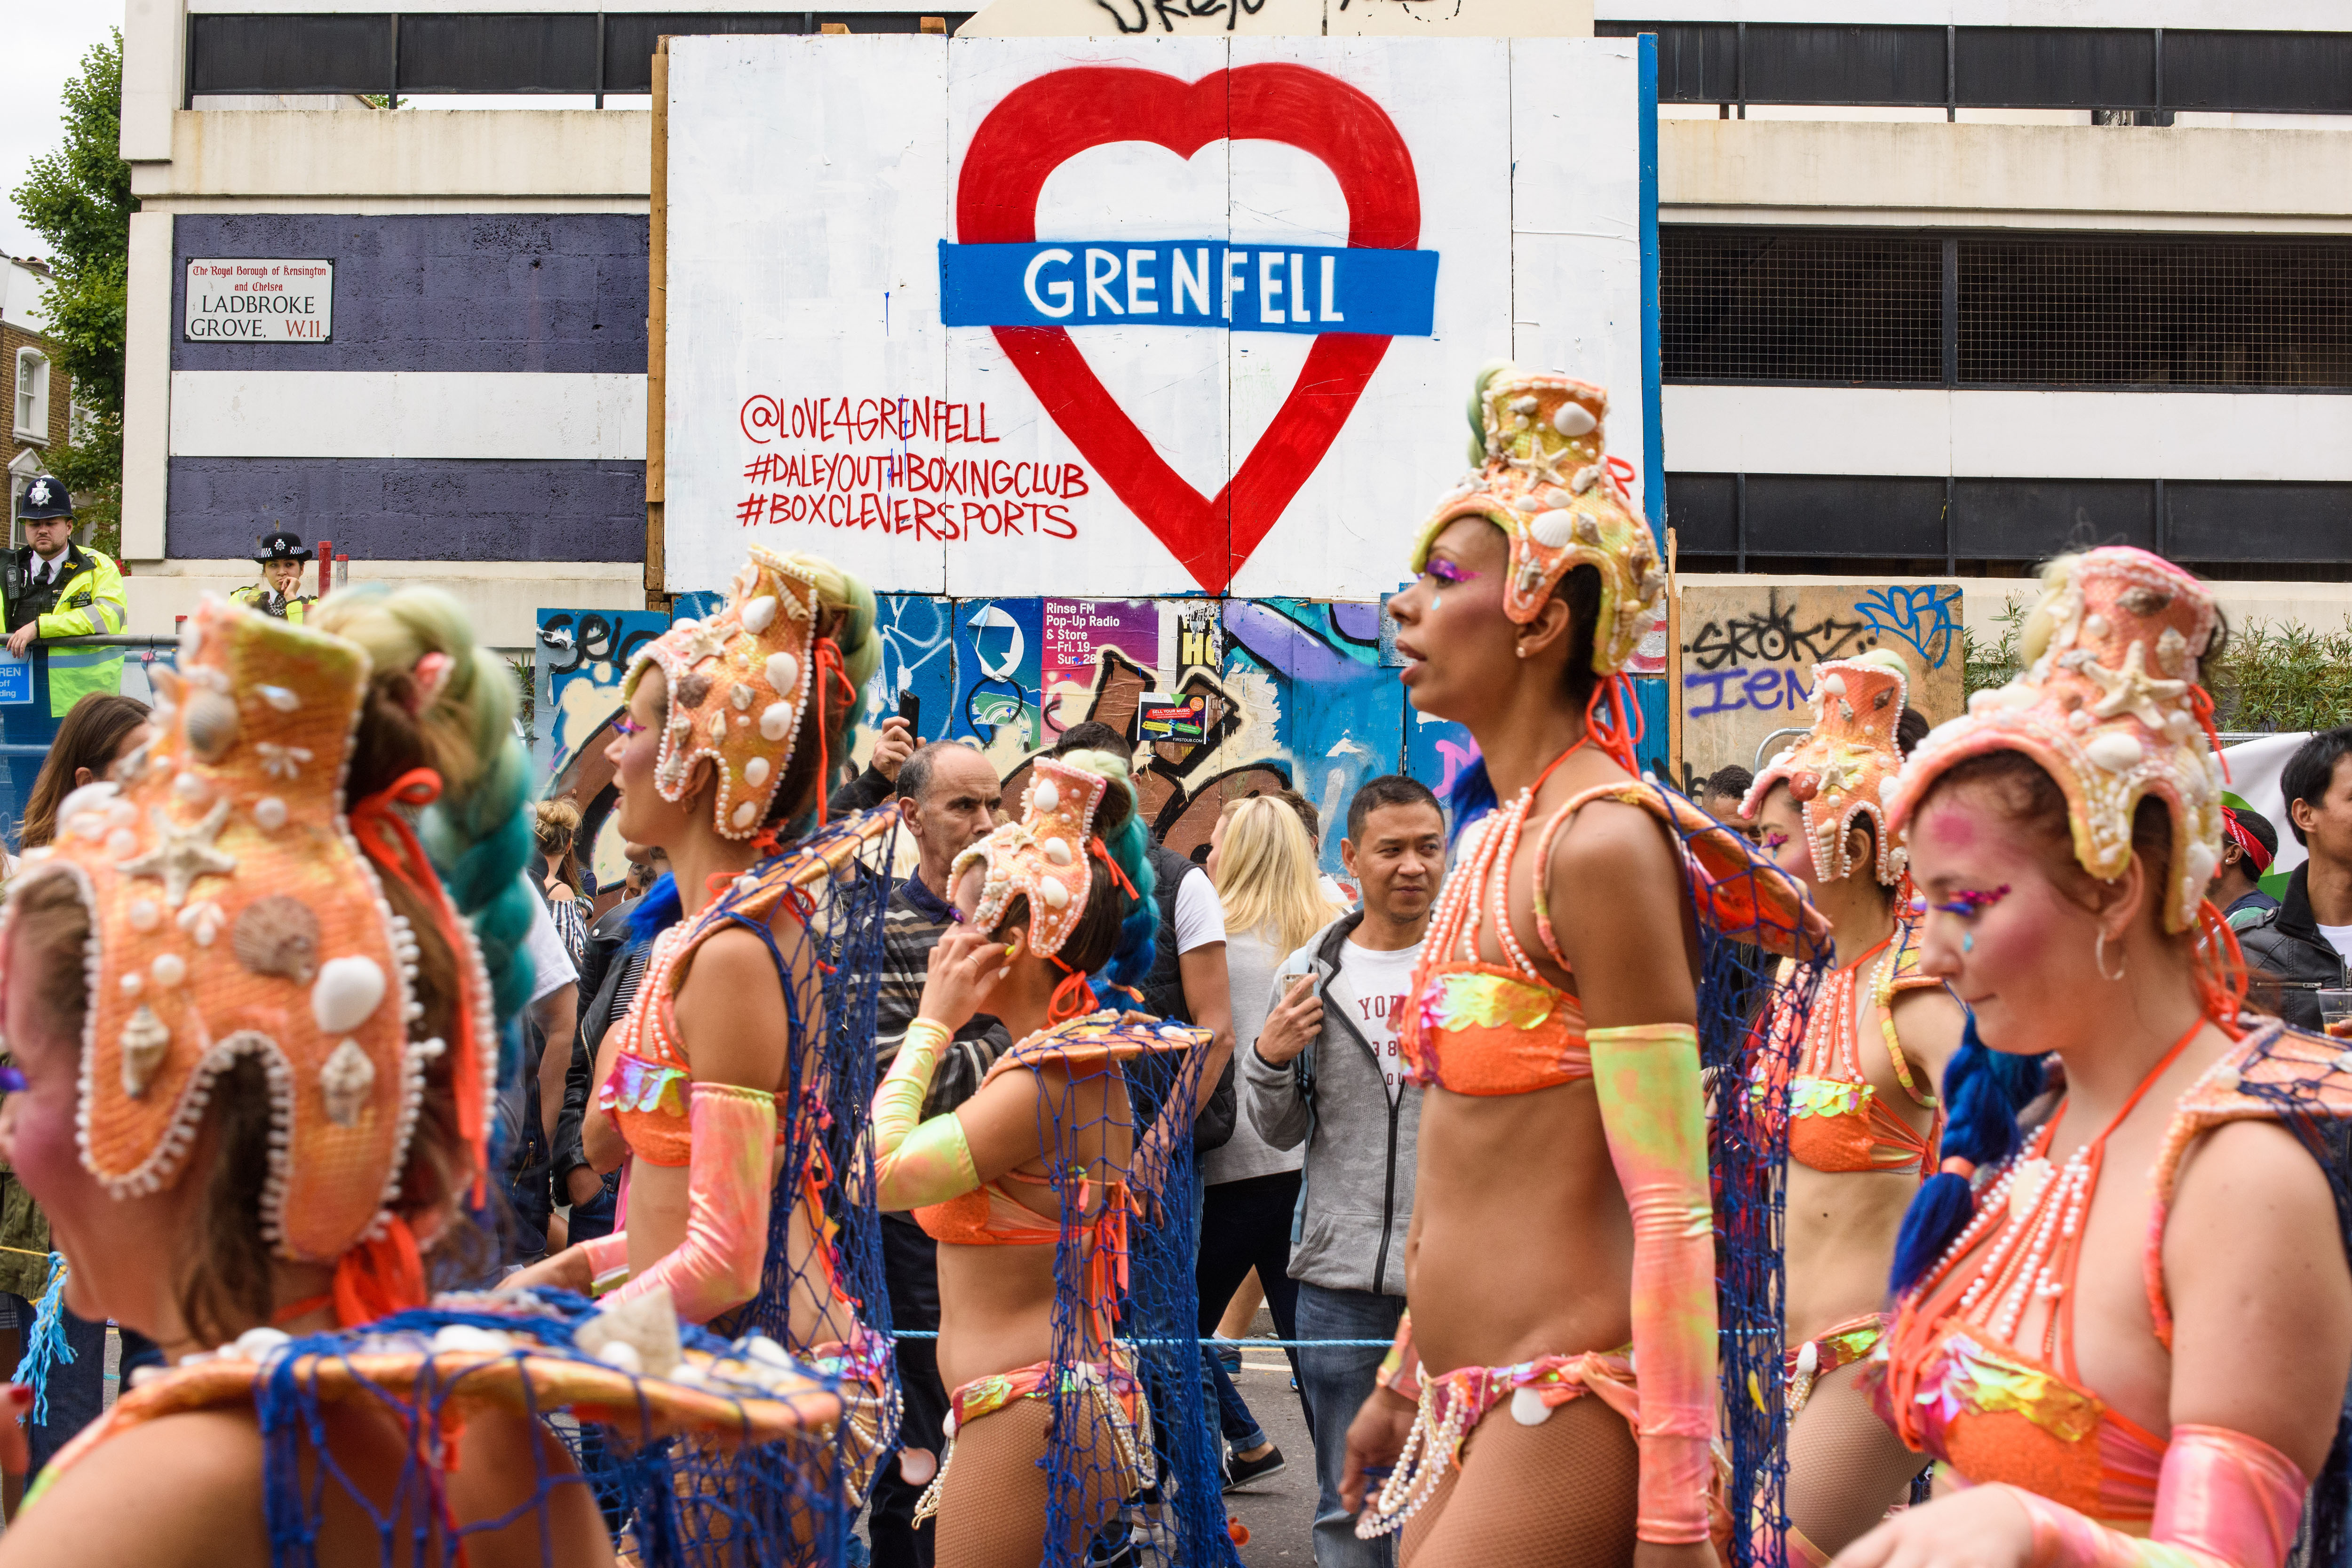 notting hill carnival parade past grenfell sign